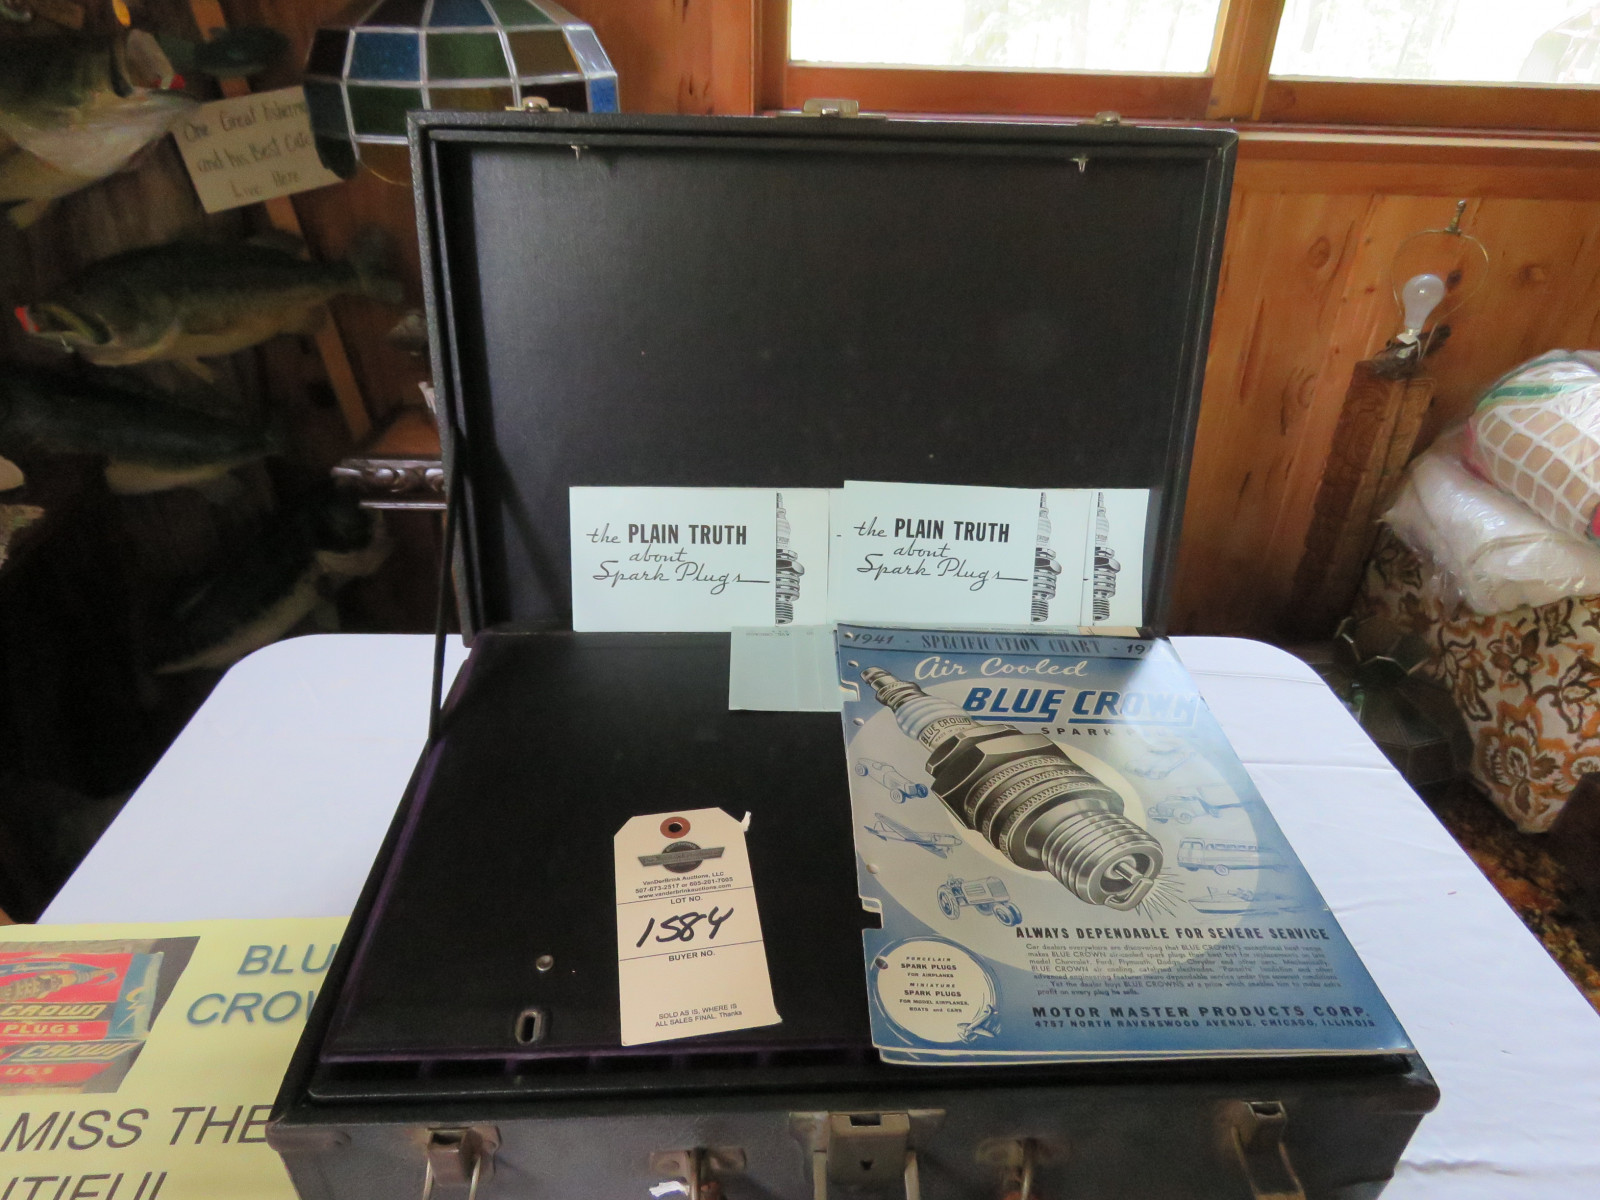 RARE Blue Crown Salesman Sample Display Case and Literature - Image 1